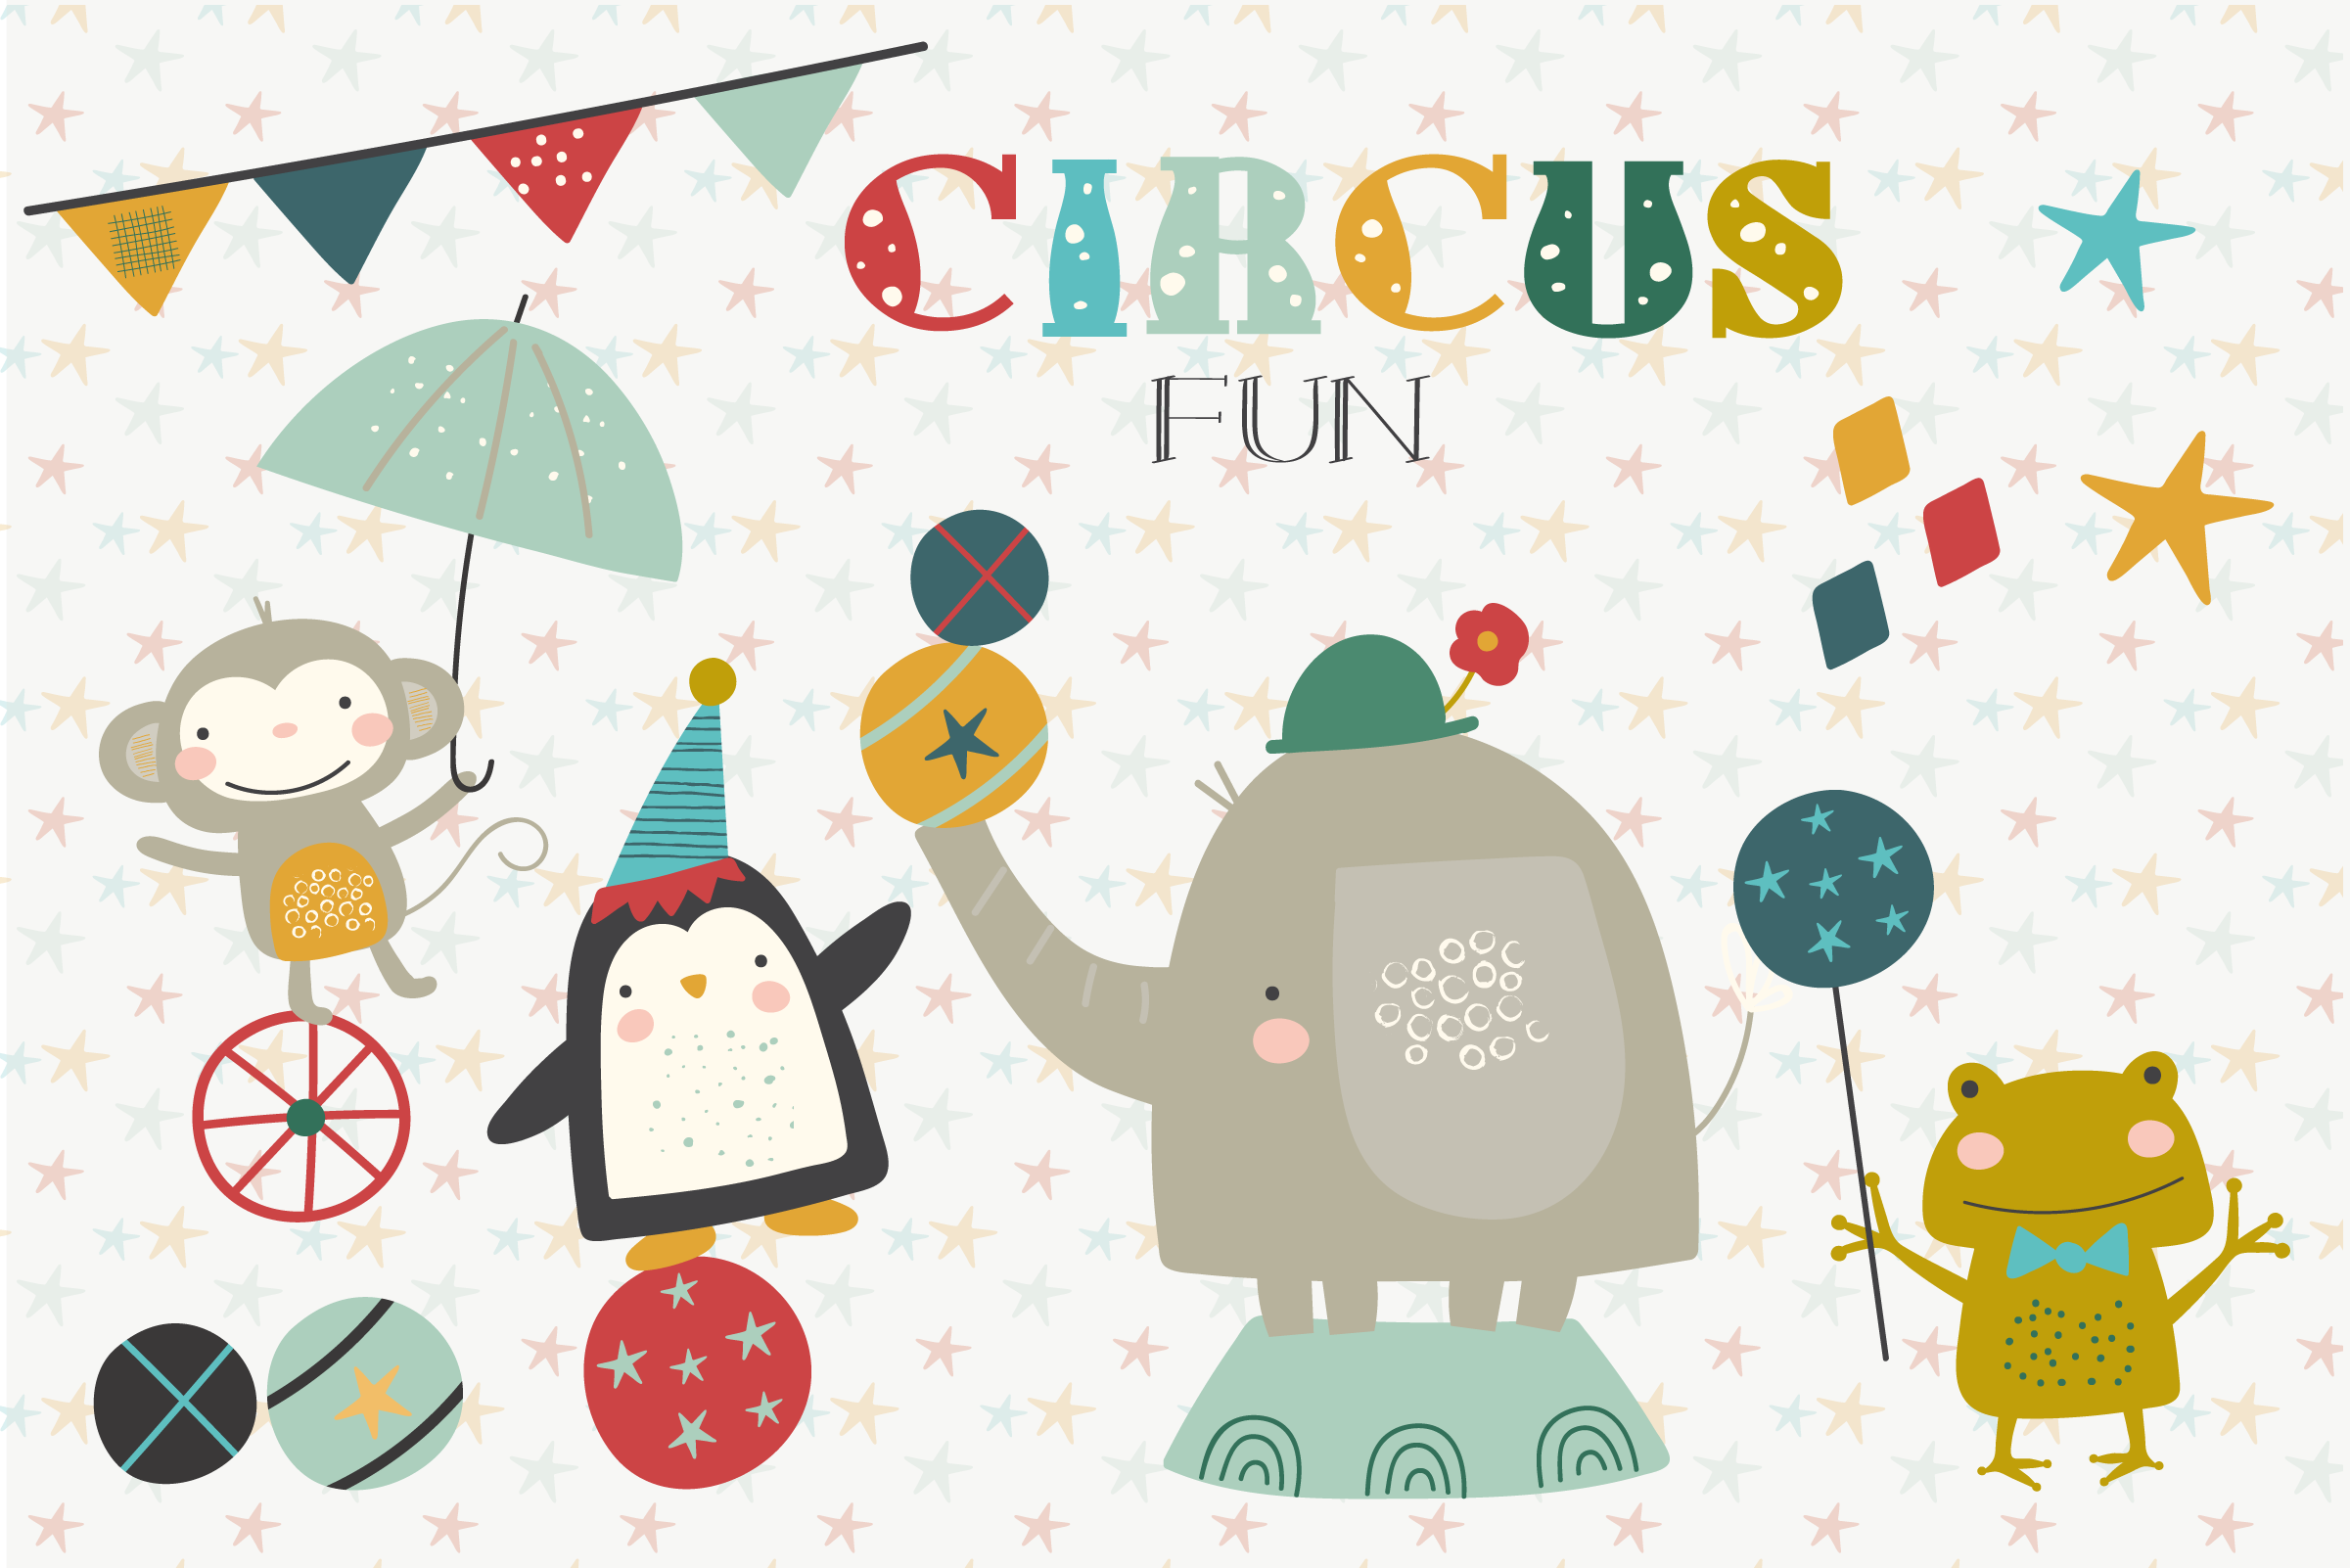 Download Free Circus Fun Graphic By Poppymoondesign Creative Fabrica for Cricut Explore, Silhouette and other cutting machines.